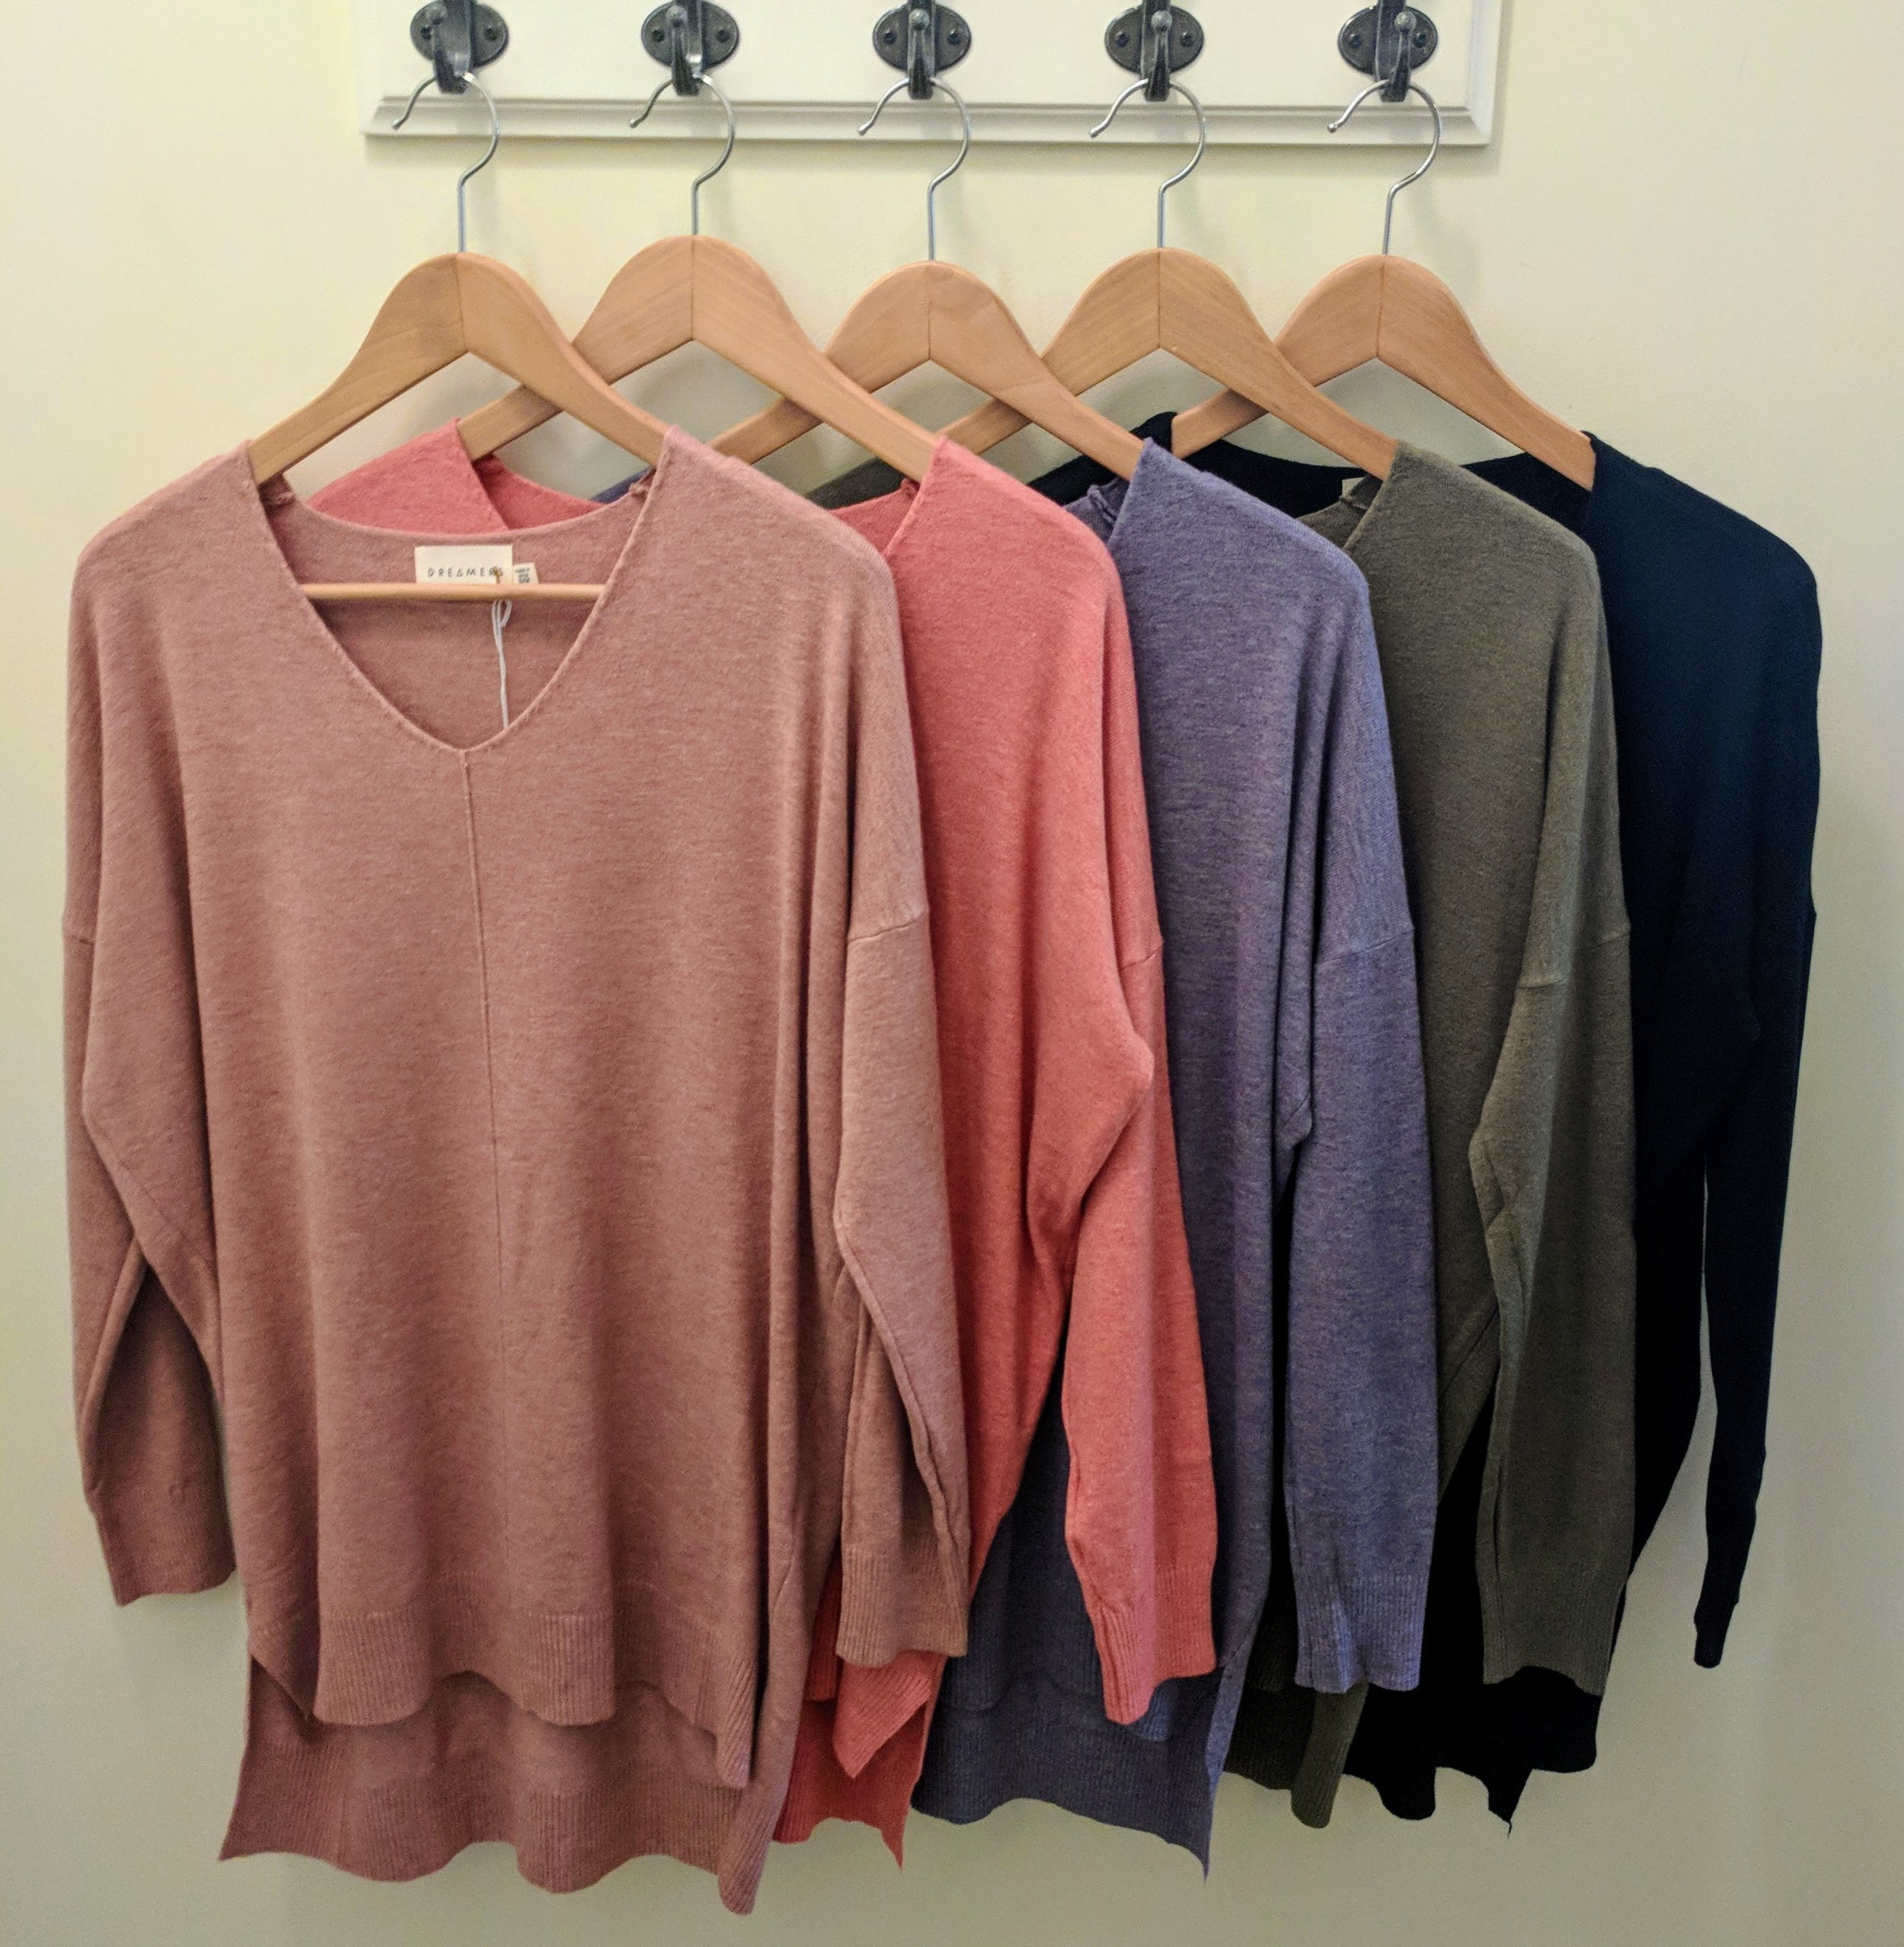 Dusty Rose, Coral, Dusty Blue, Olive, and Black dreamer sweater.